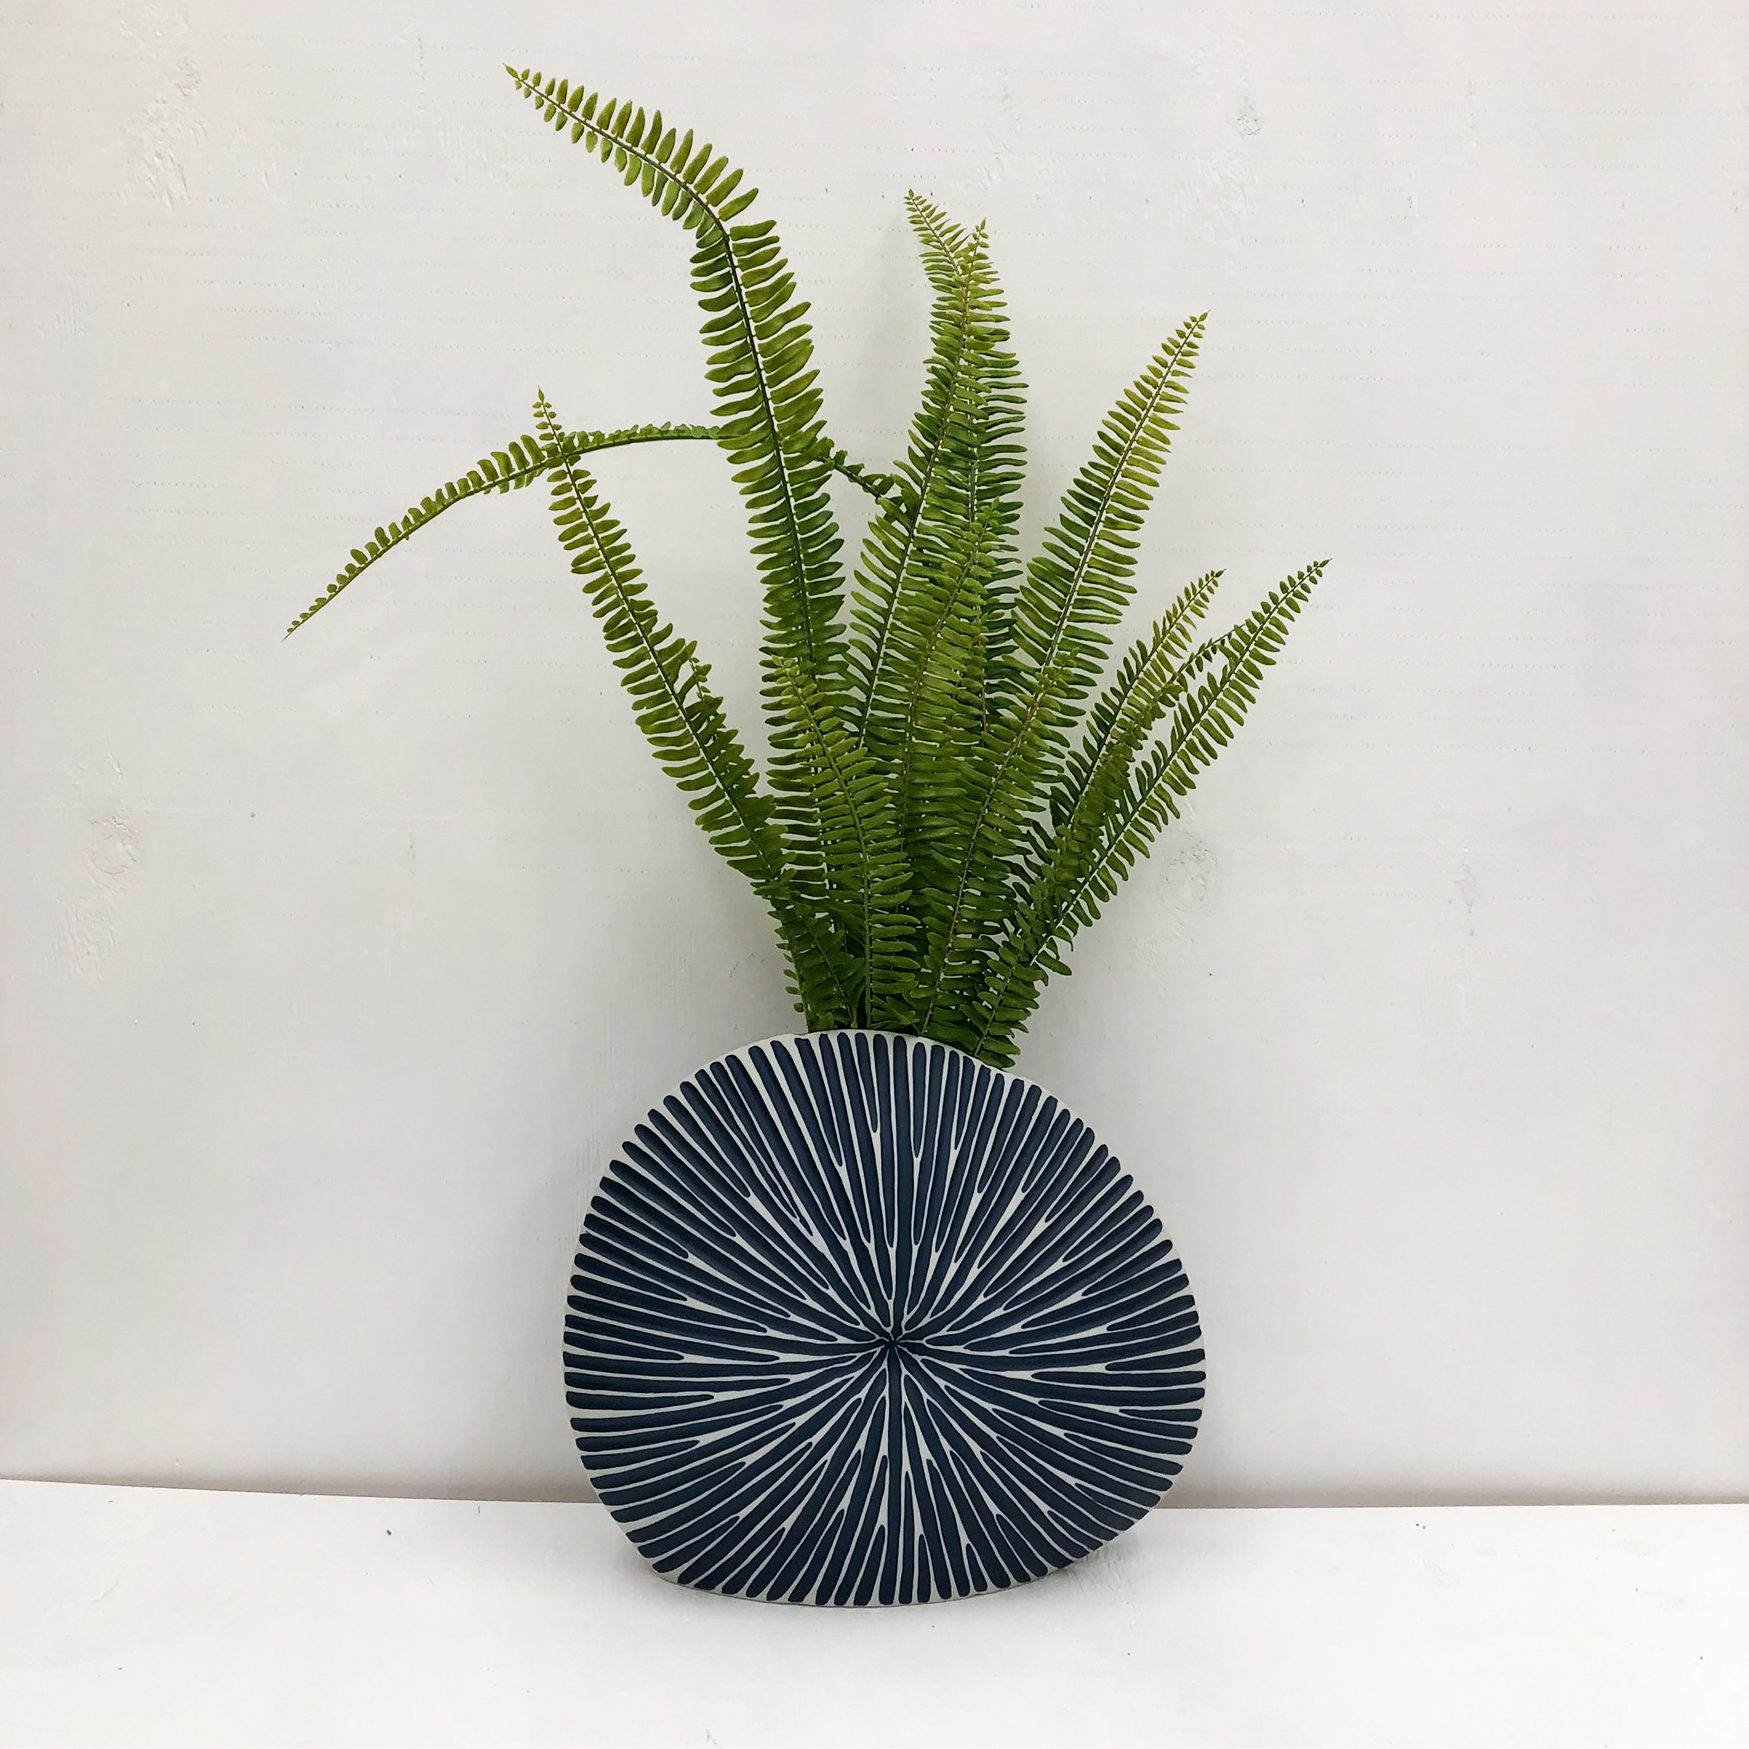 Diva Round Handmade Vase - Blue - front view with plant